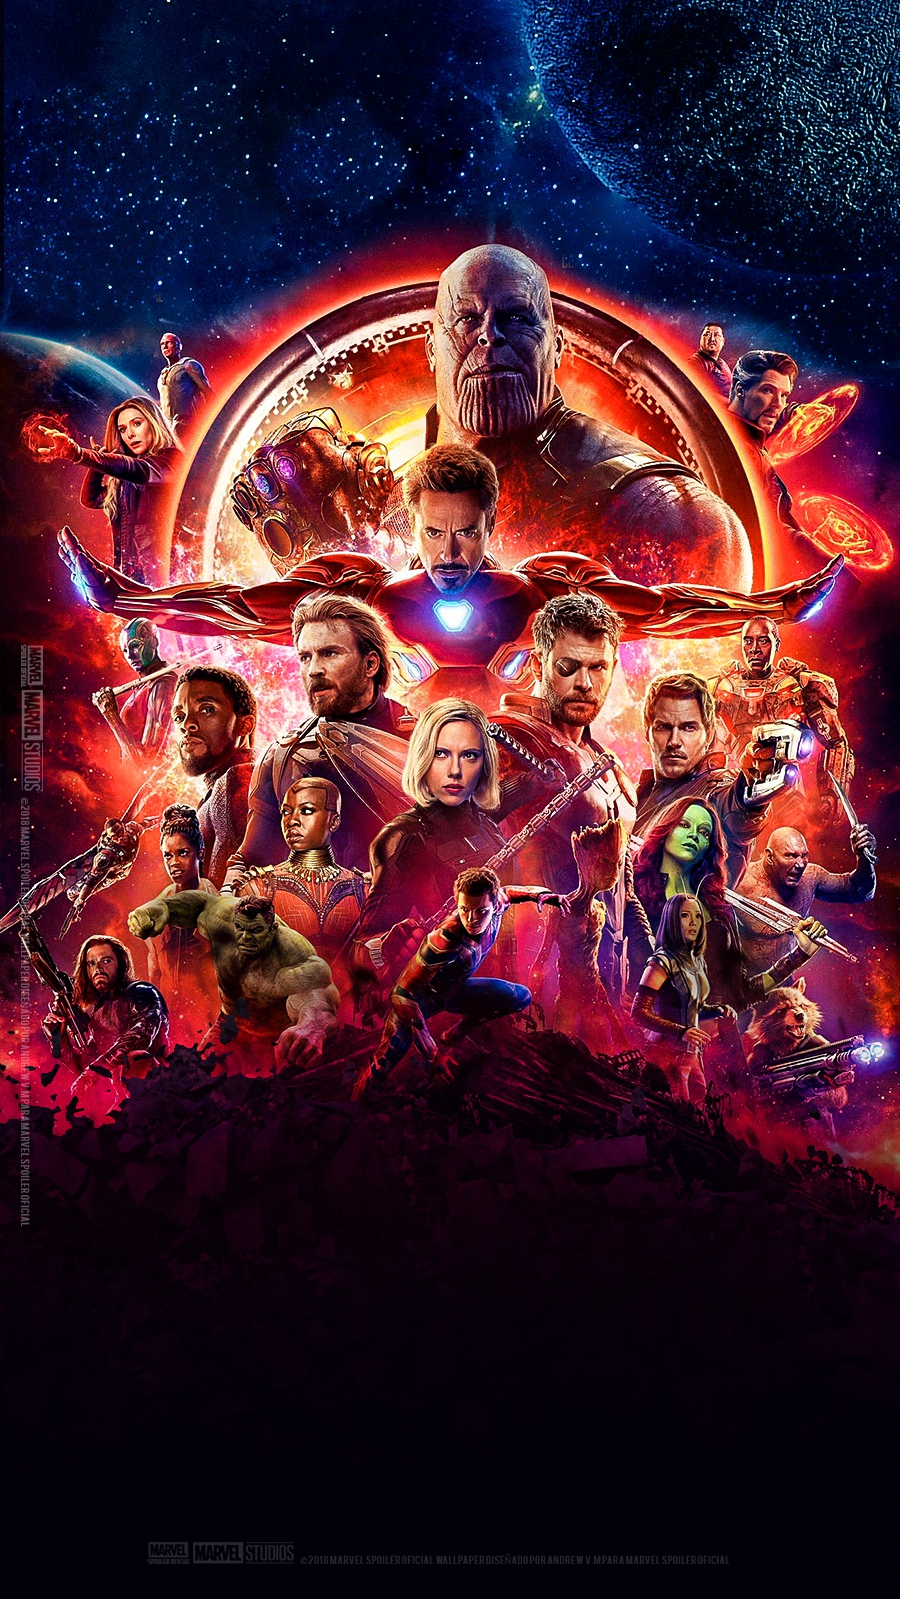 AvengersInfinityWarPosteriPhoneWallpaper  iPhone Wallpapers